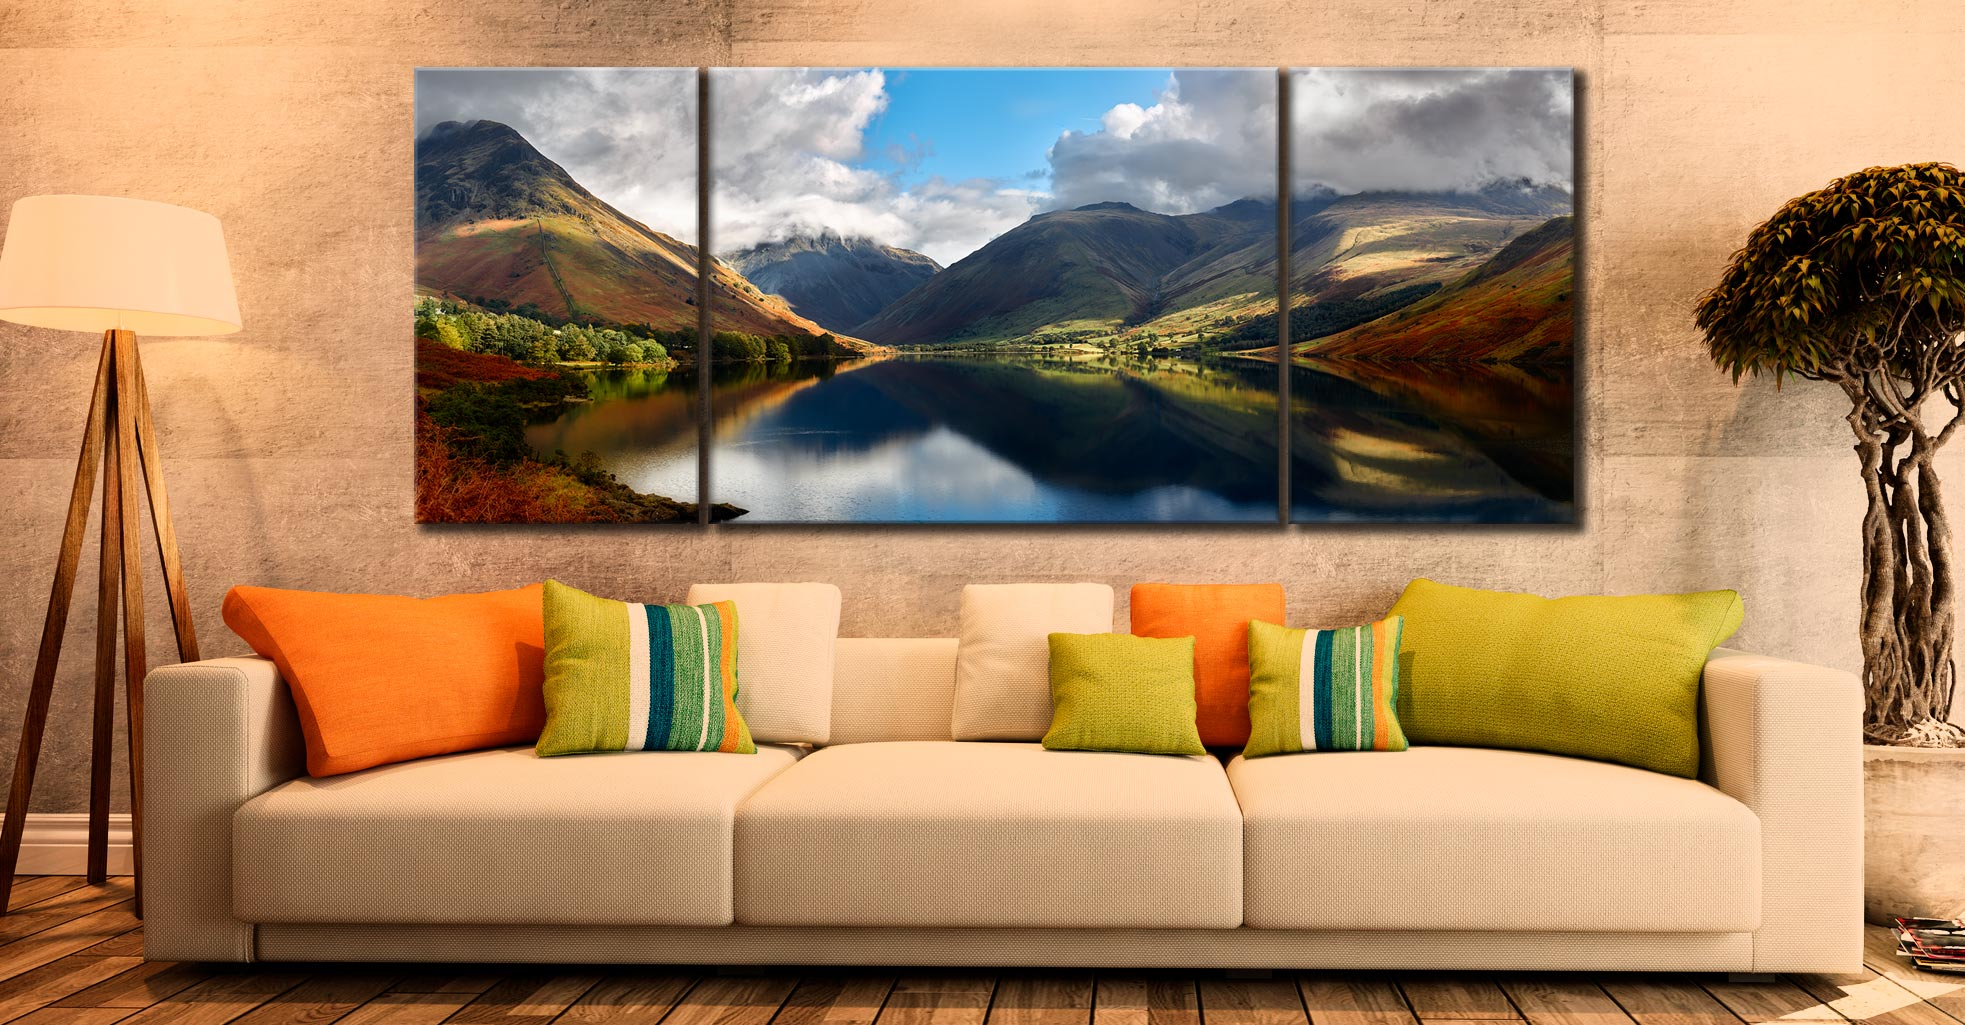 Peachy Wasdale Head Panorama Panel Wide Centre Canvas On Wall Wasdale Head Panorama Canvas Prints Panoramic Canvas Prints Online Panoramic Canvas Prints Australia photos Panoramic Canvas Prints